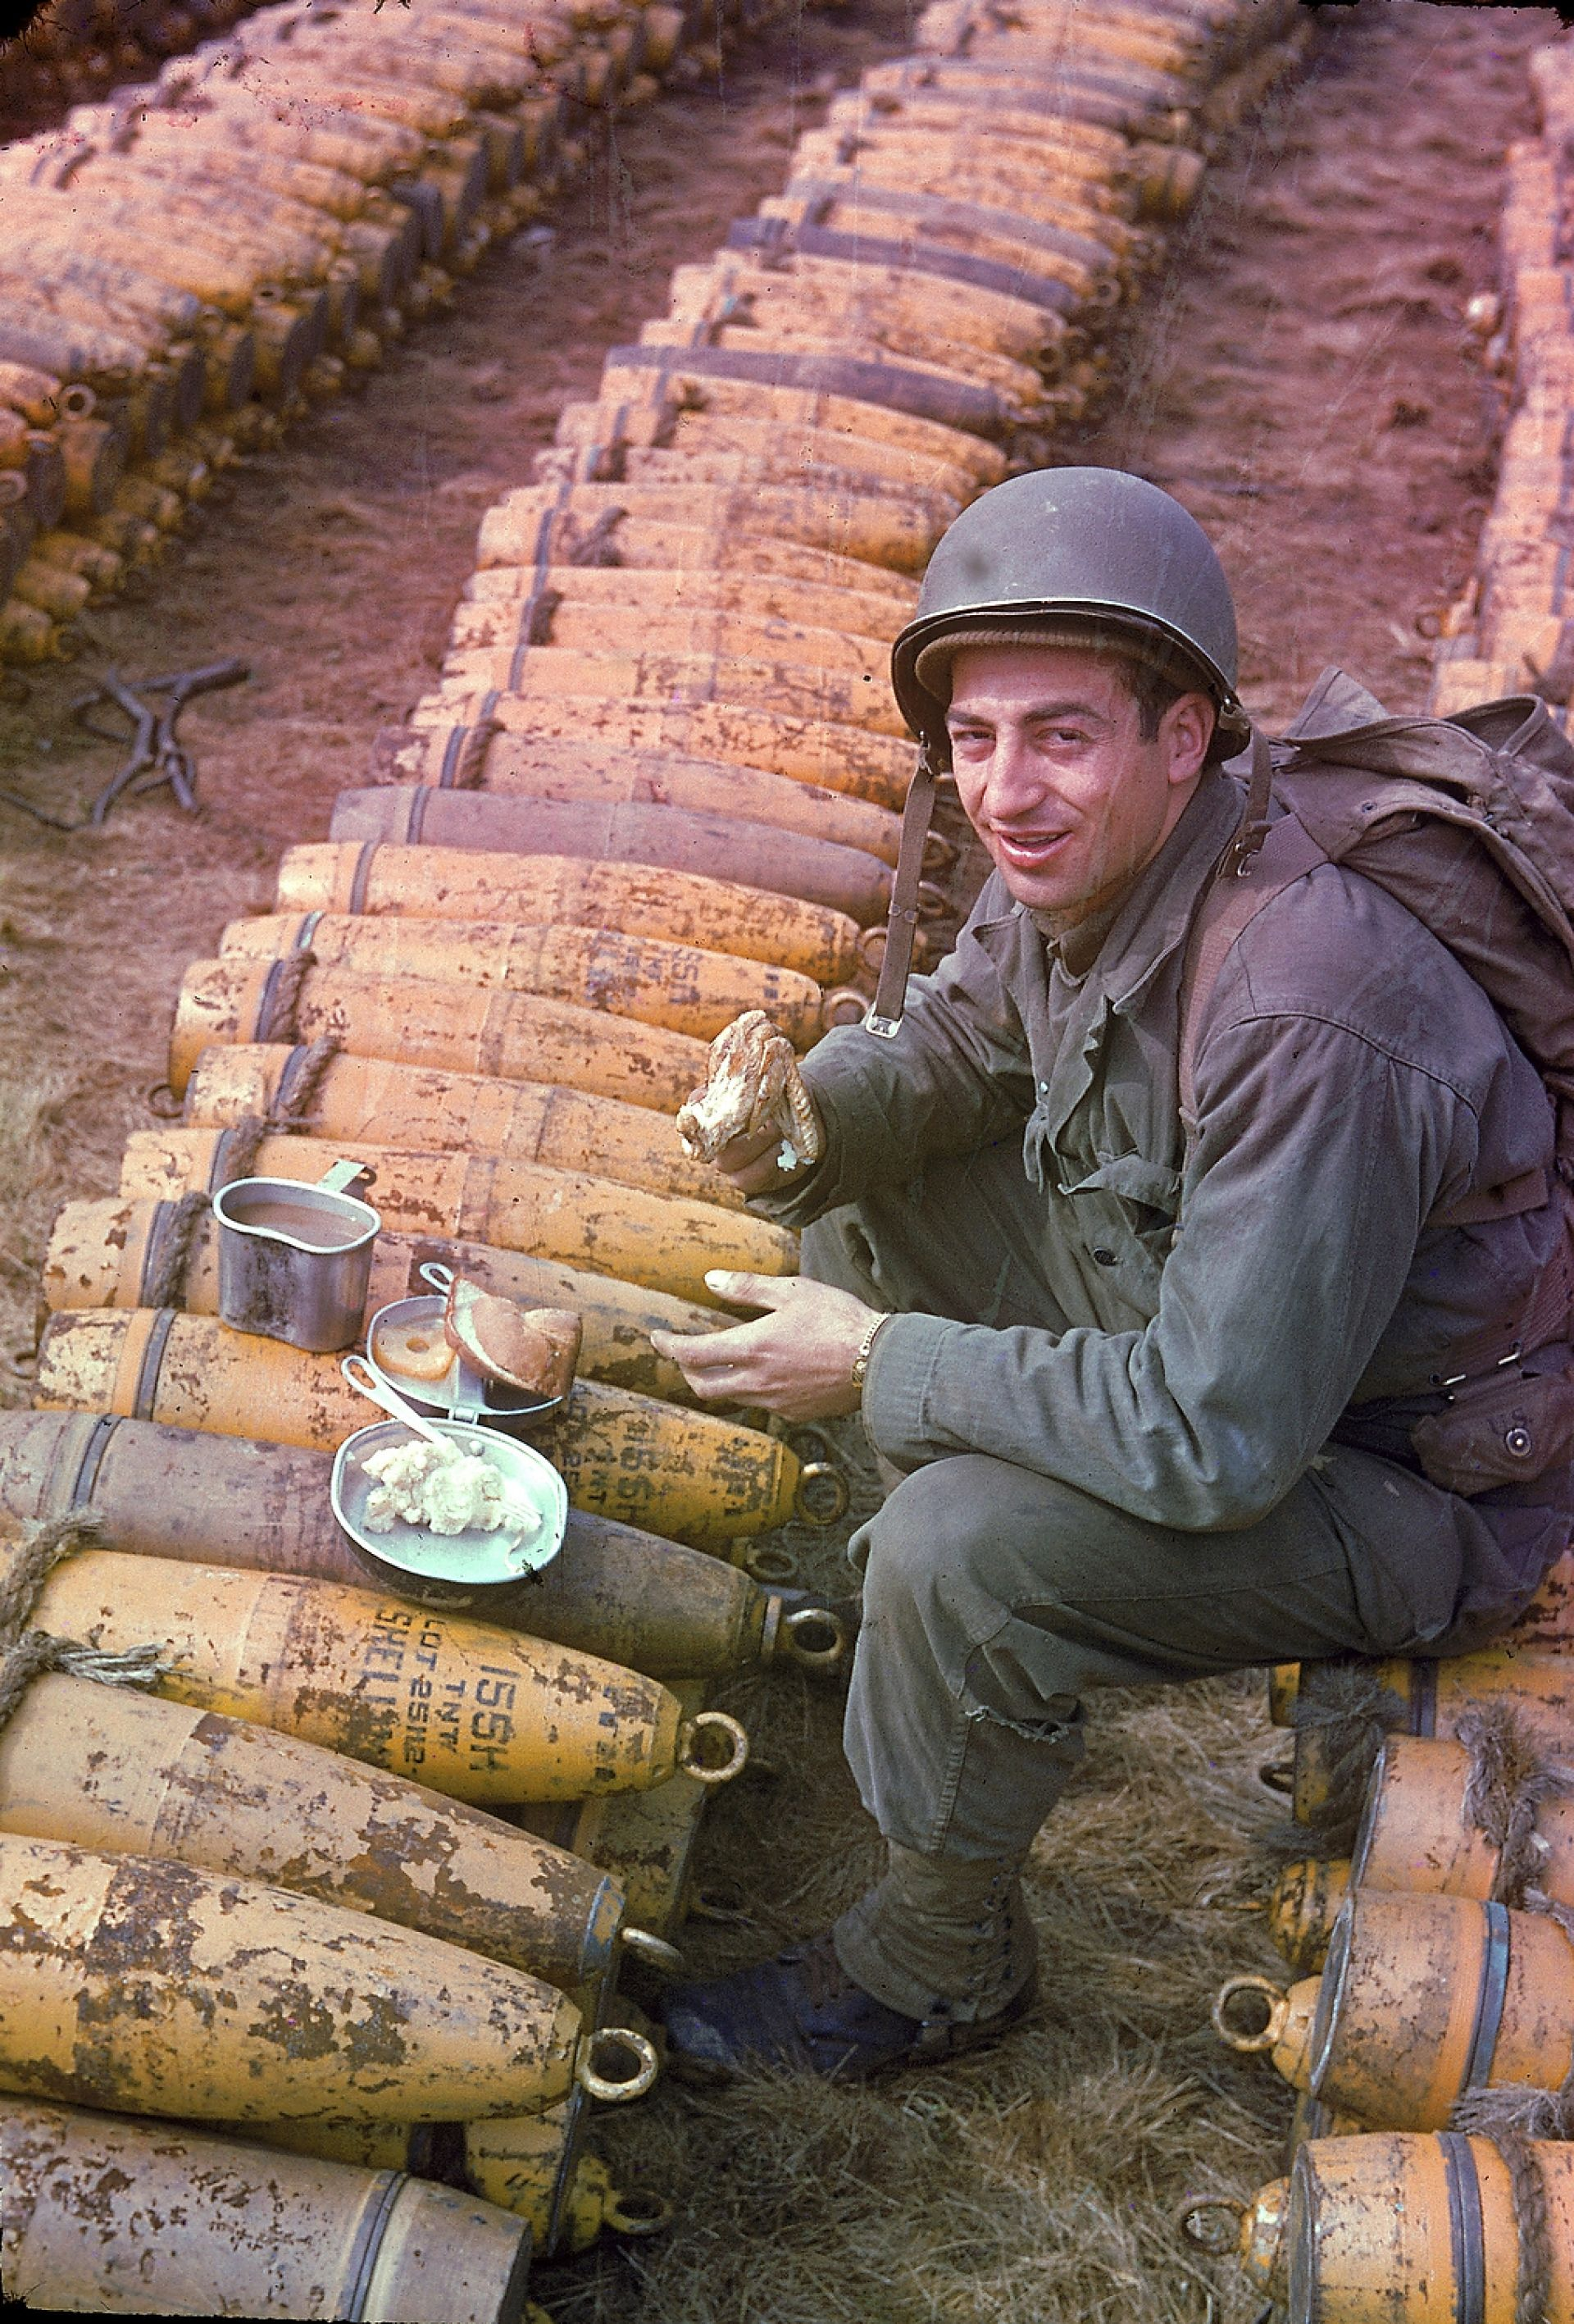 27 Rare Color Photos From WWII - People & Lifestyle